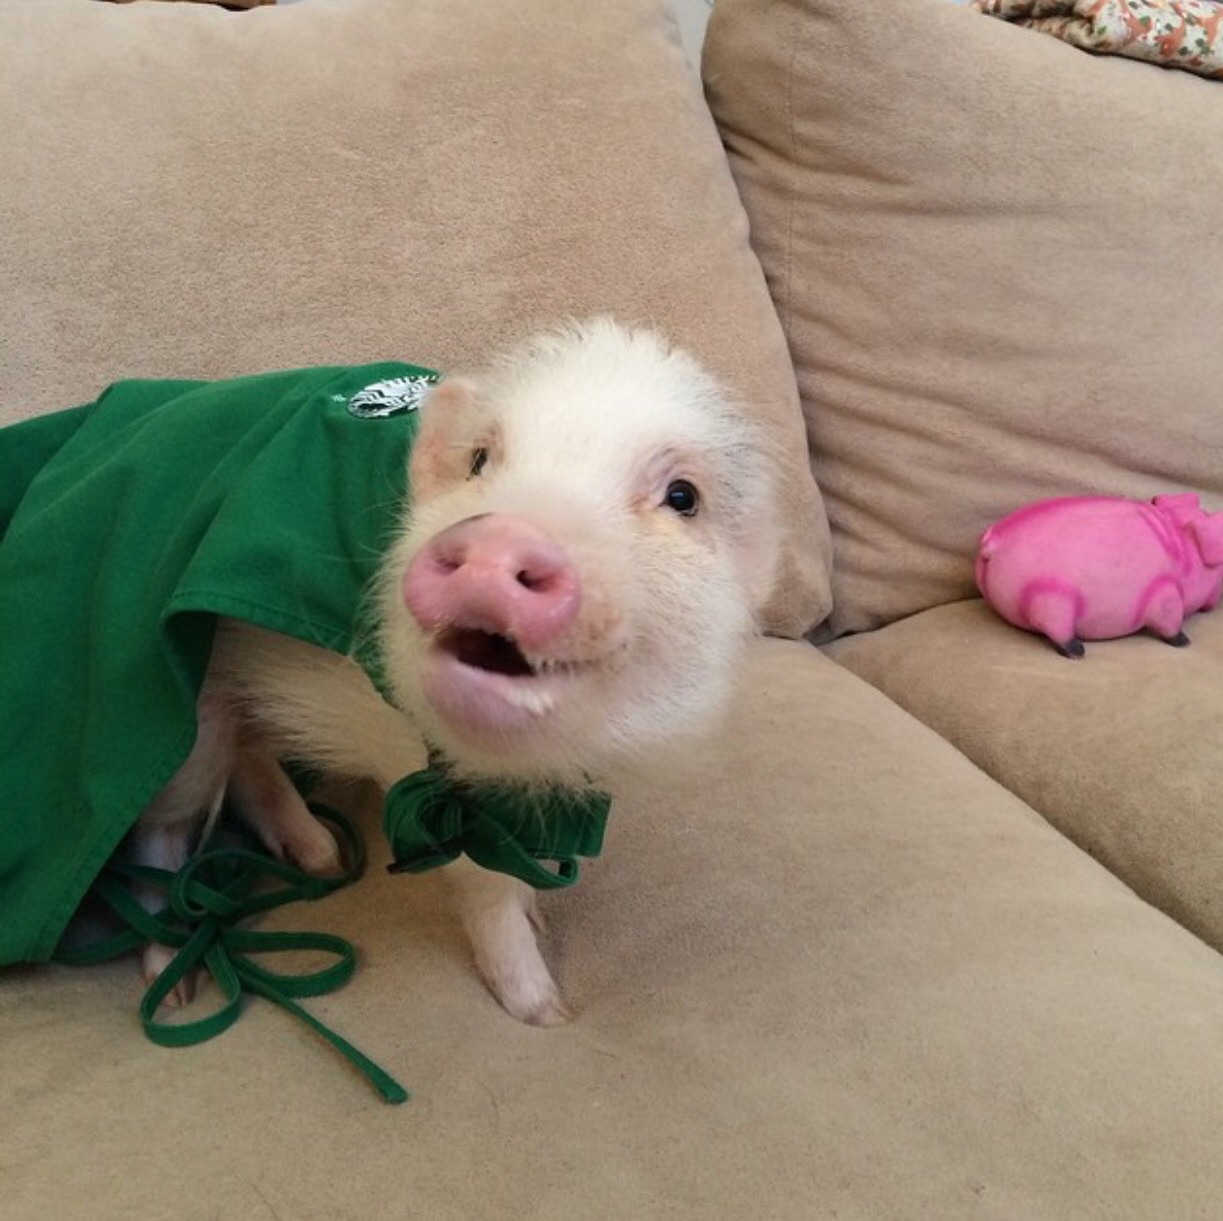 One piggy latte for me please!